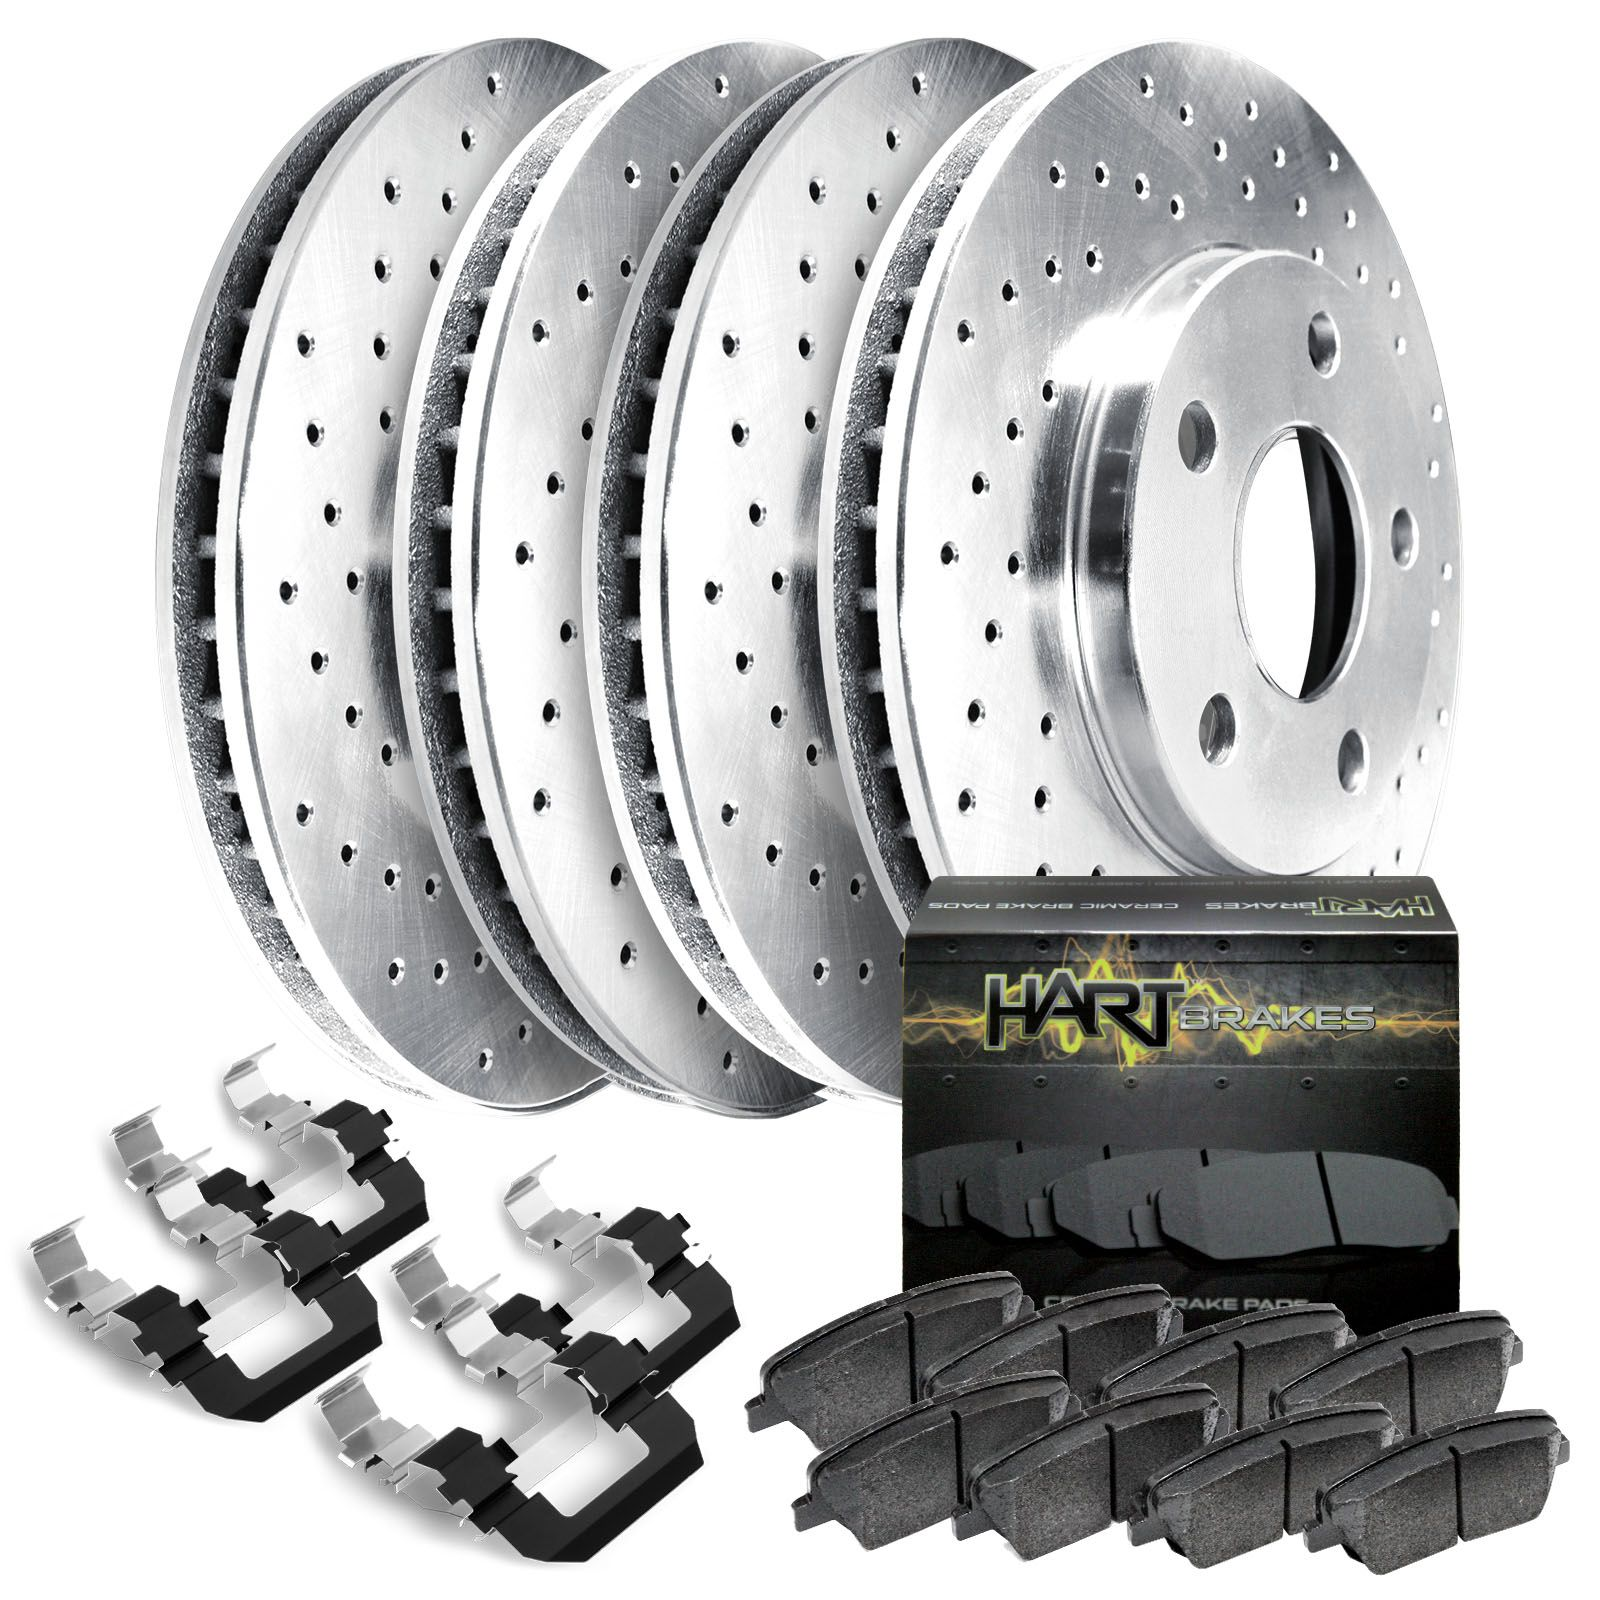 For Audi A6 Quattro Front Rear Black Slotted Brake Rotors+Ceramic Brake Pads